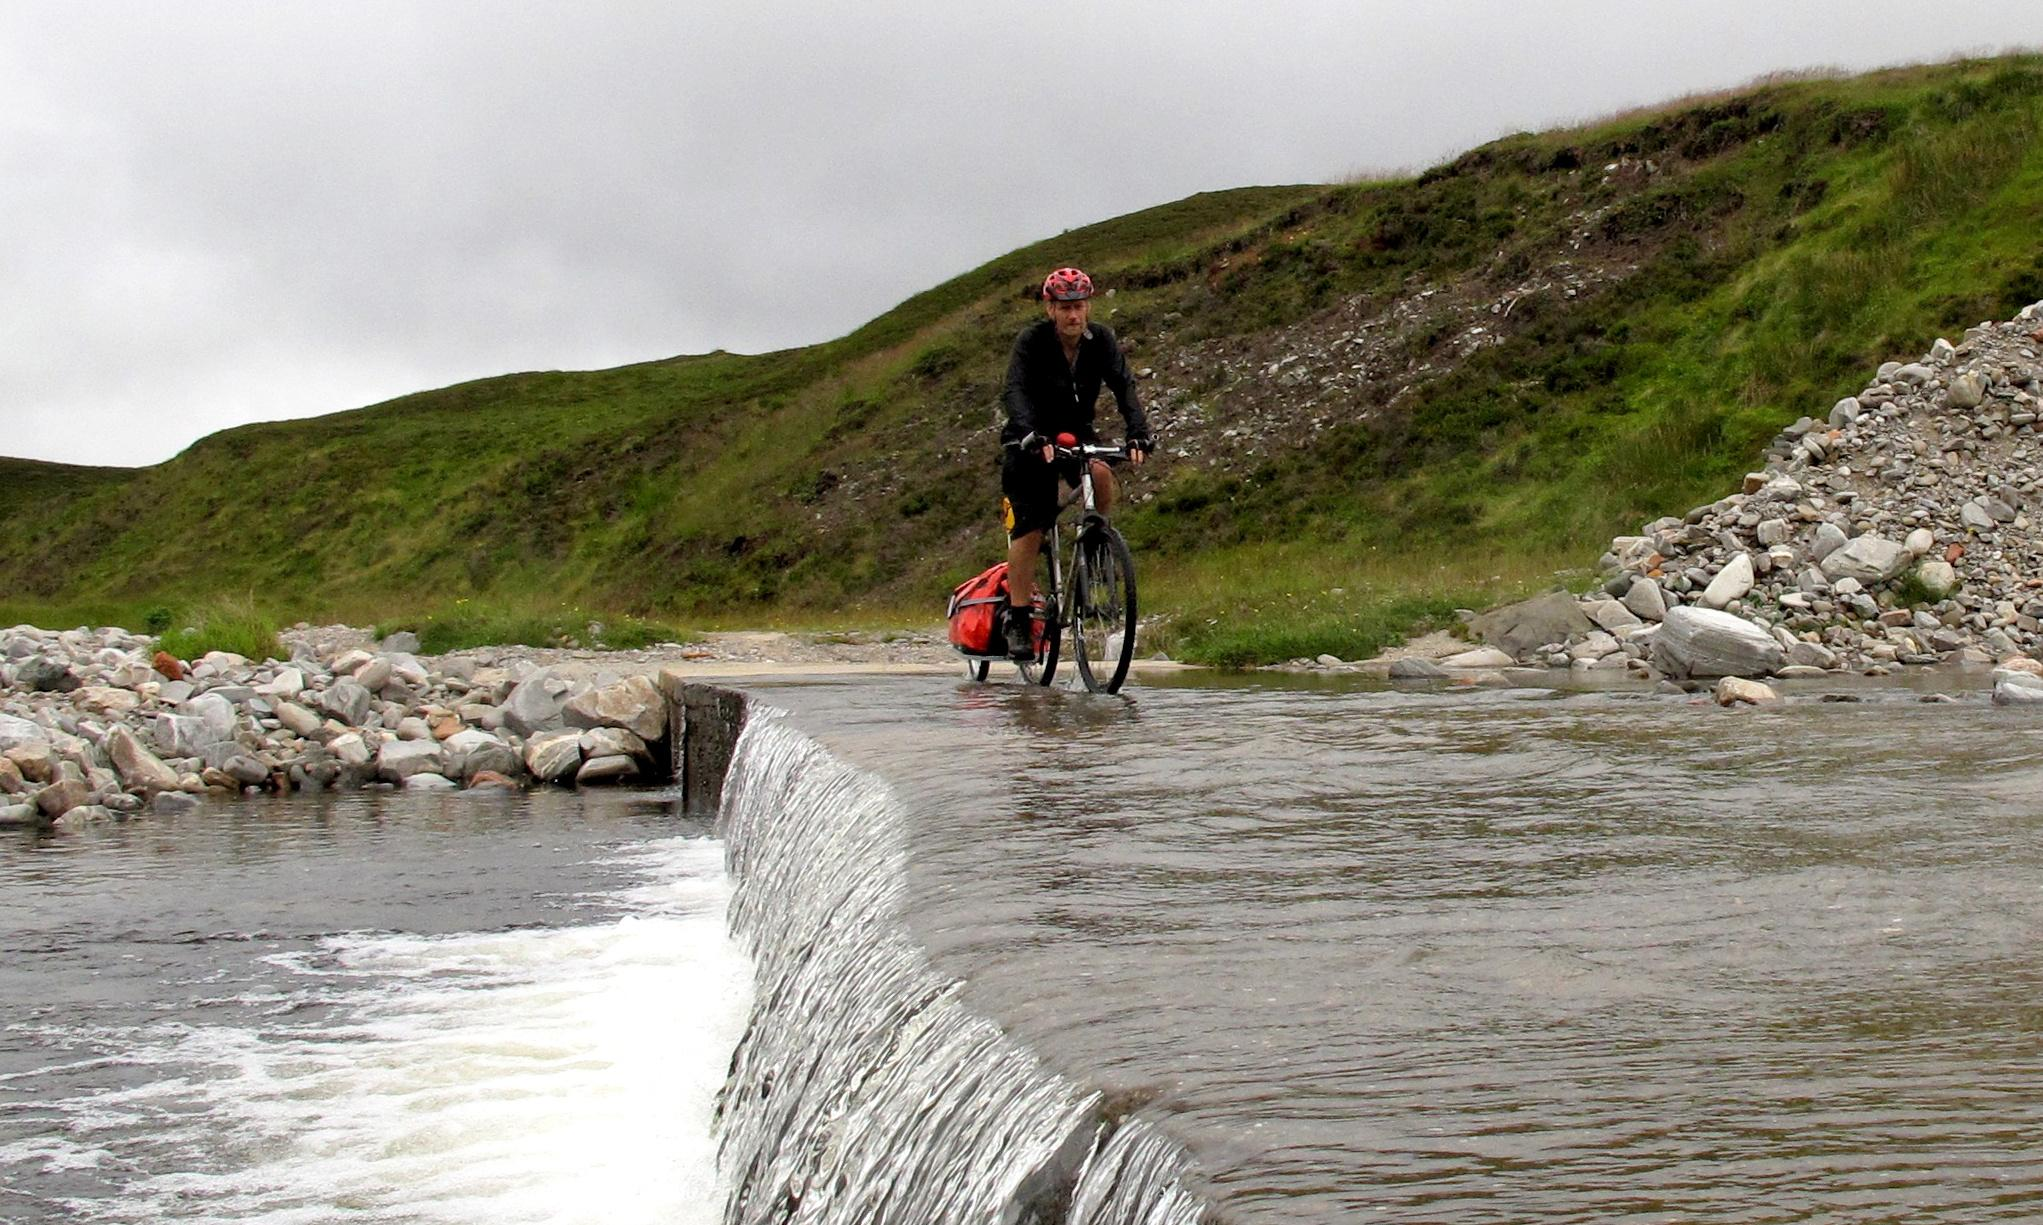 Two wheels, no rules: bikepacking across Scotland